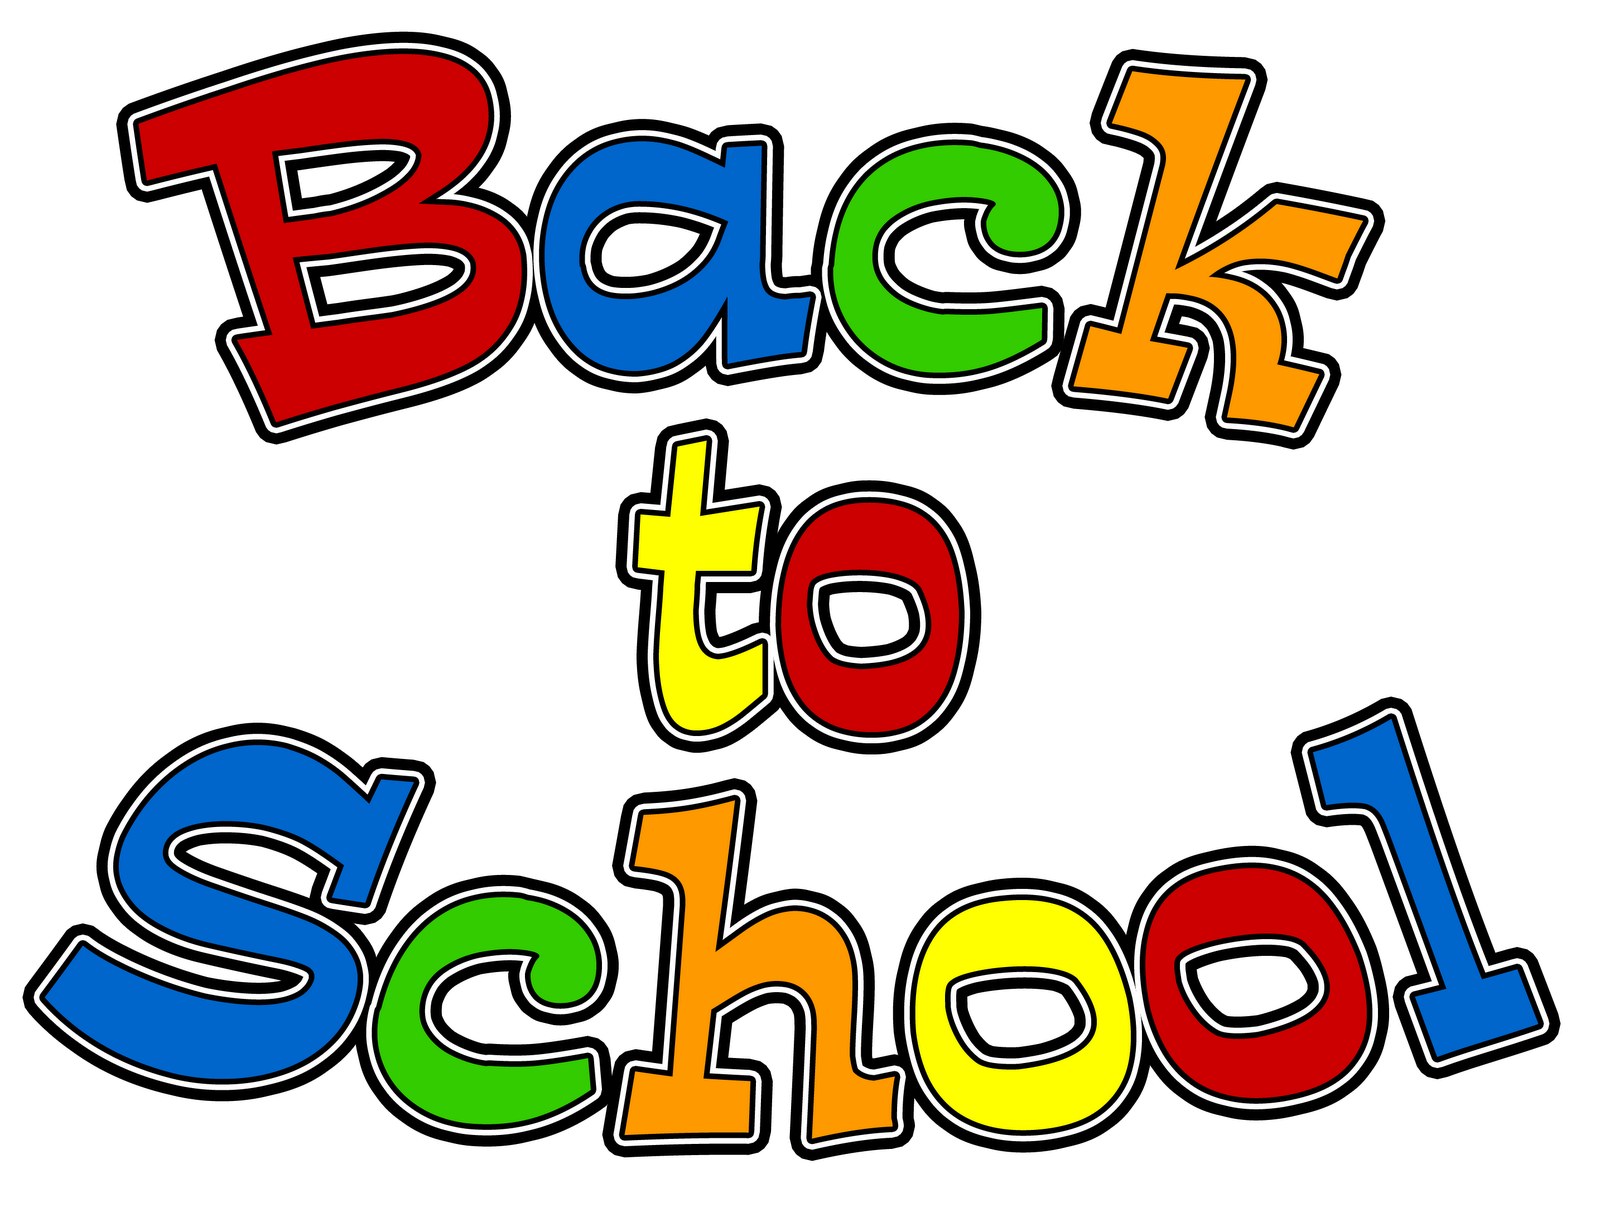 welcome back to school clipart at getdrawings com free for rh getdrawings com free school clipart images free school clipart classroom